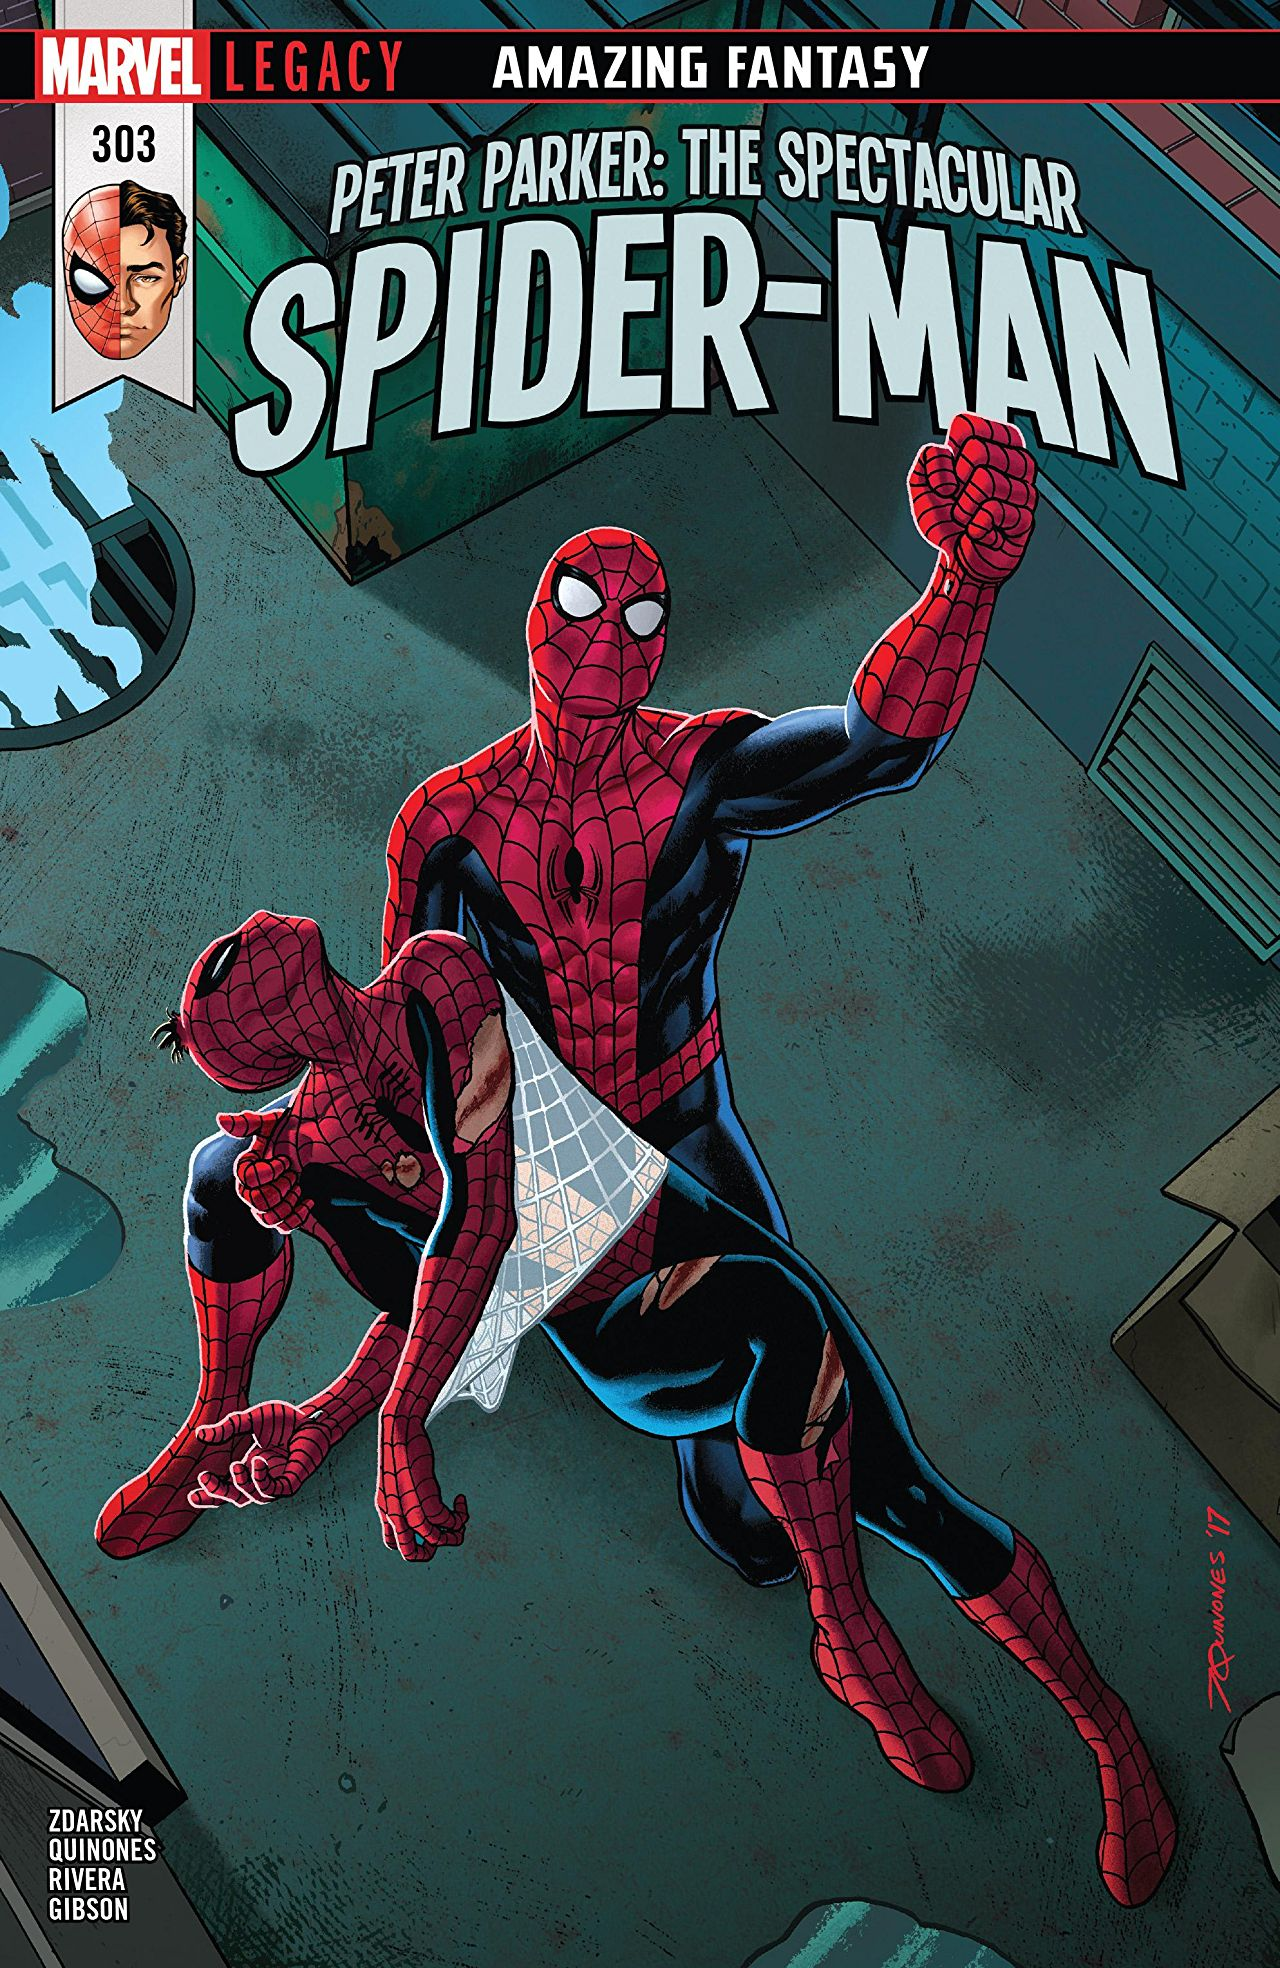 Peter Parker - The Spectacular Spider-Man 303